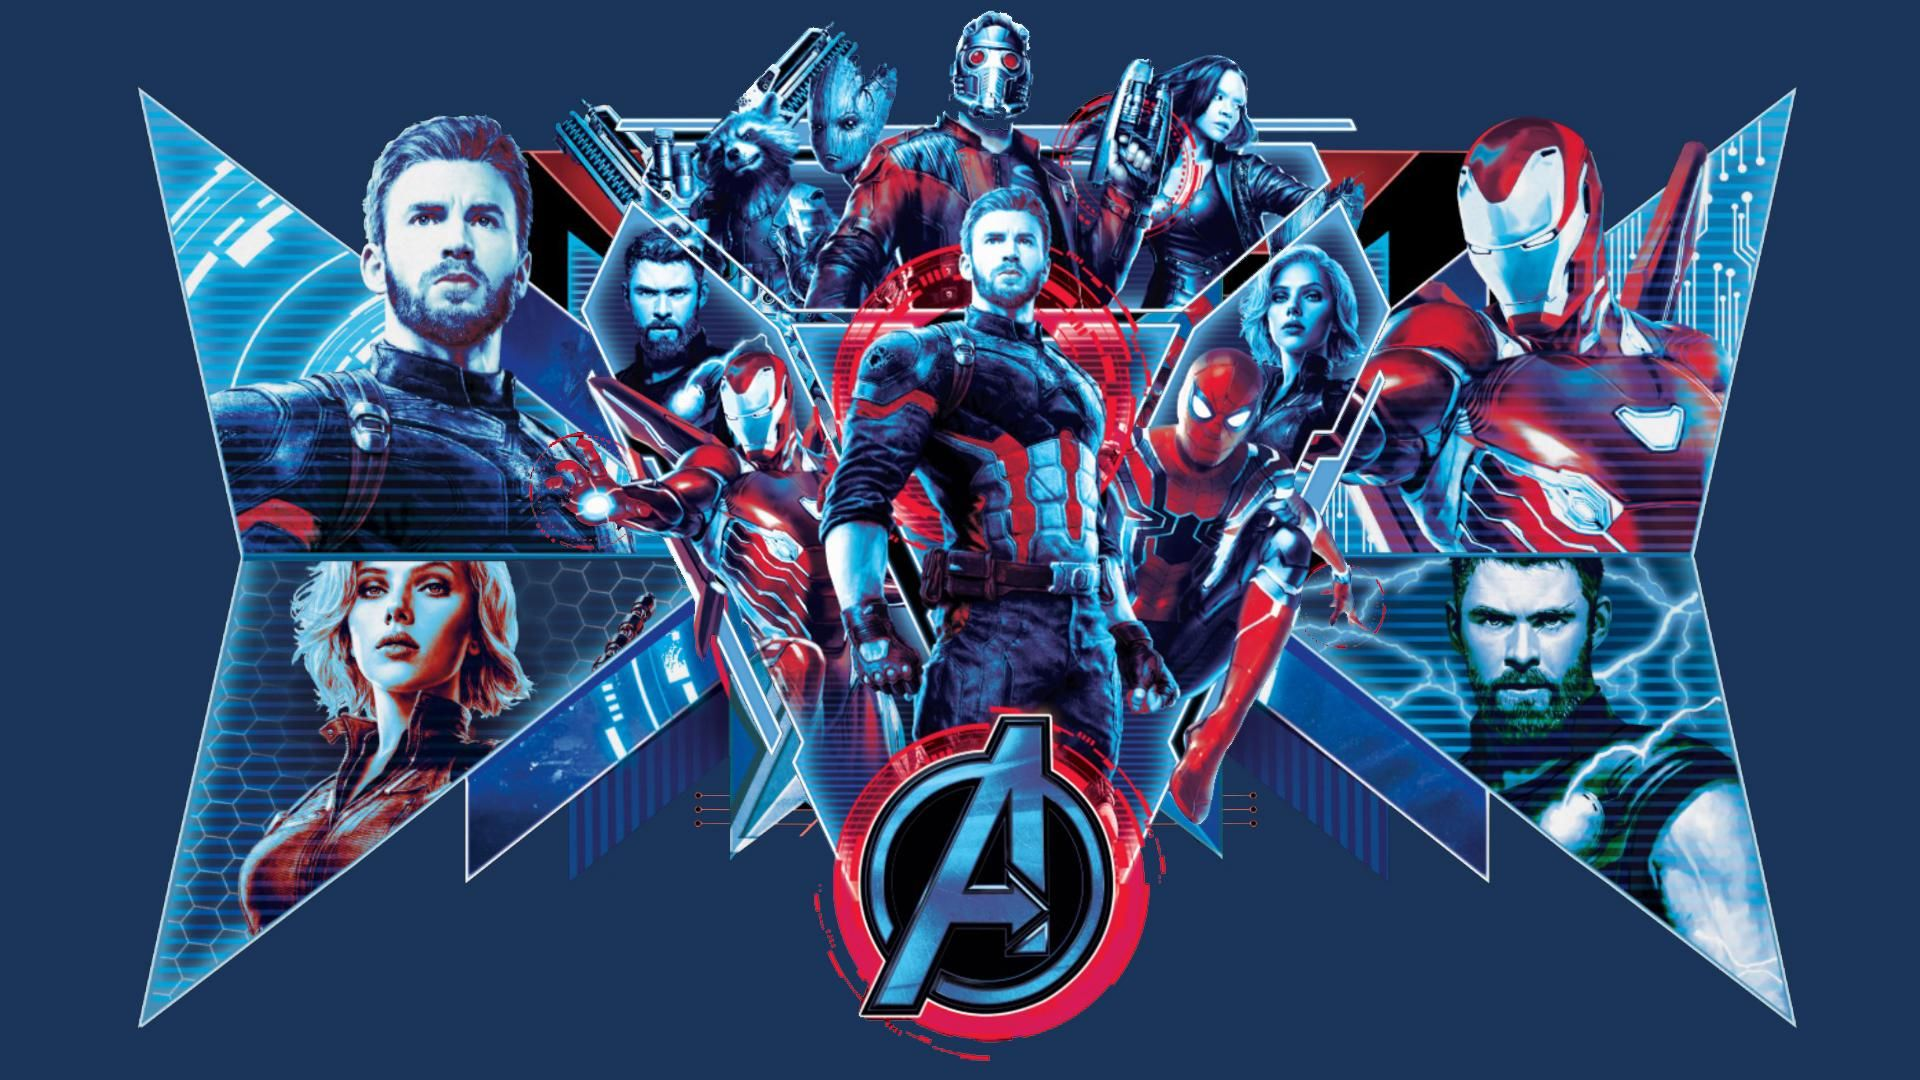 Pin By Edge Of Gaming On Marvel Cinematic Universe In 2020 Avengers Wallpaper Avengers Infinity War Avengers Pictures